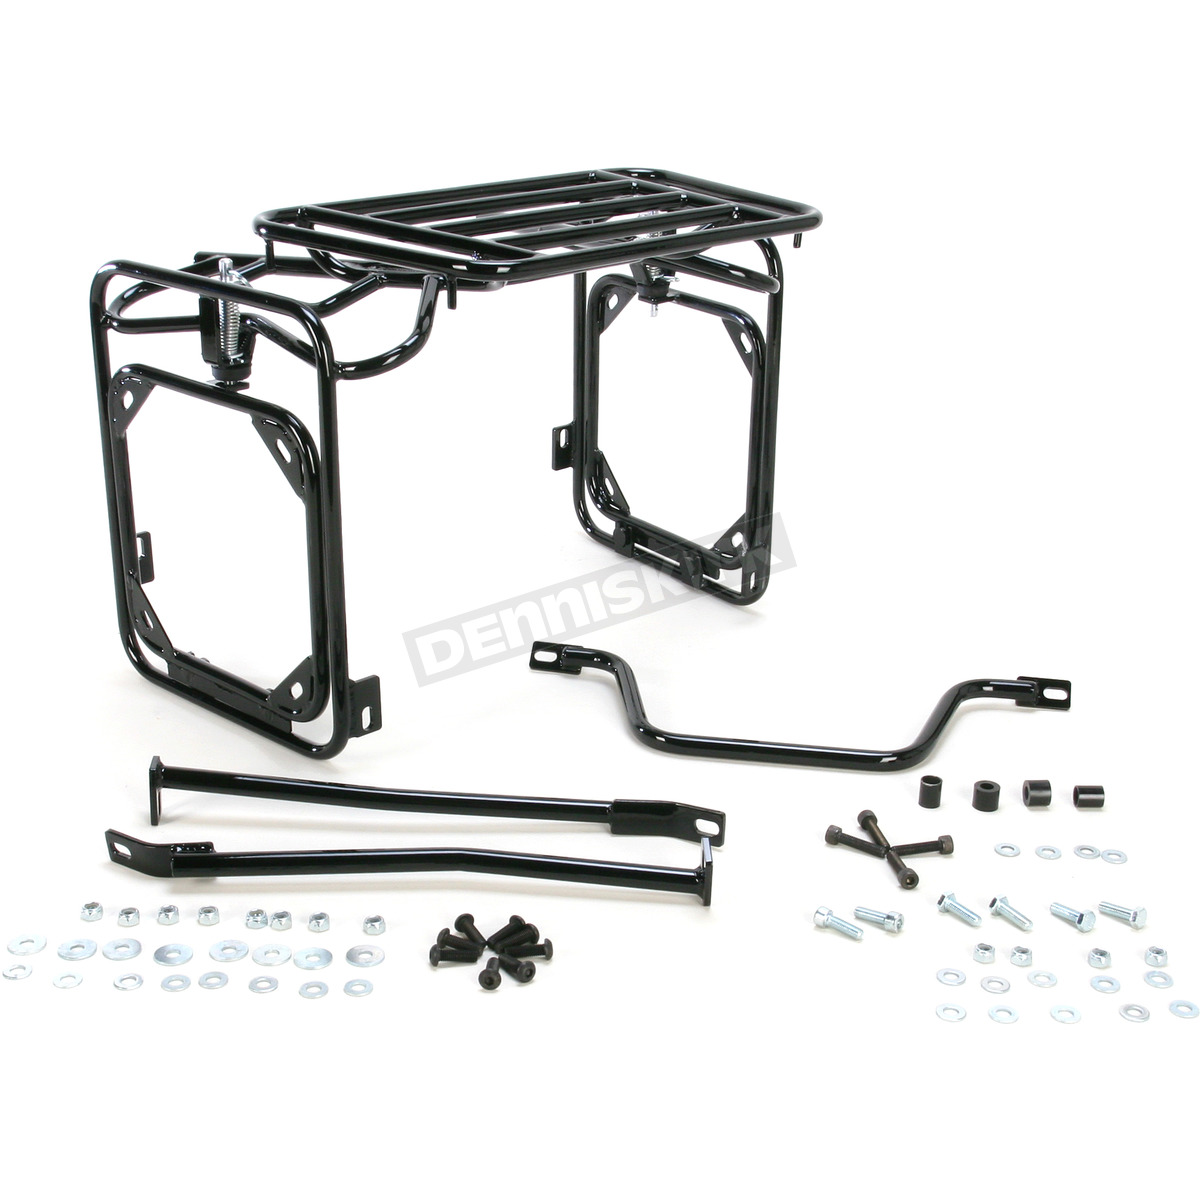 Moose Expedition Luggage Rack System 1510 0213 Dirt Bike